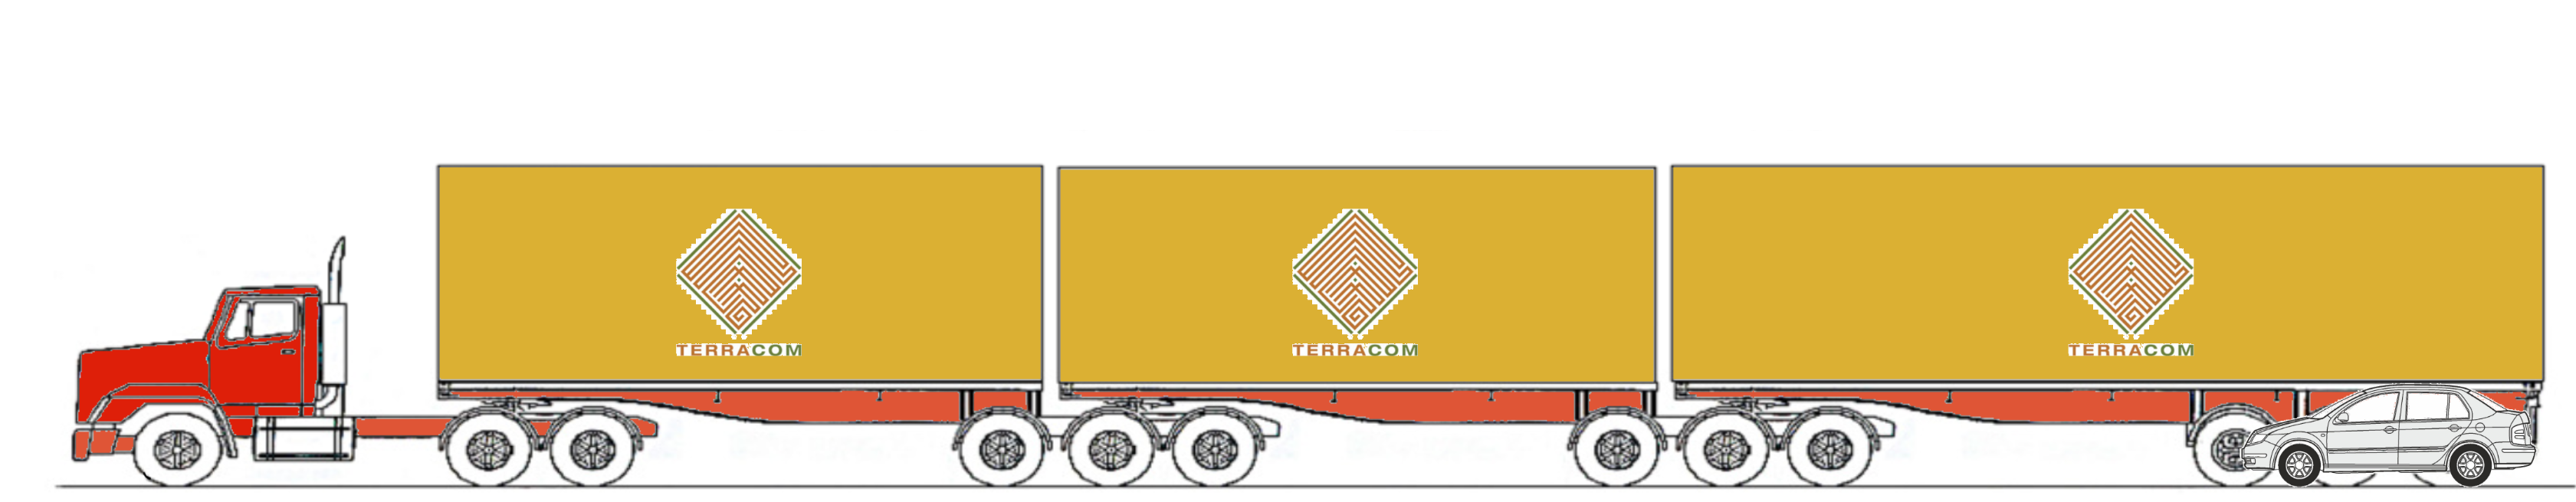 Type_1_Road_train_and_car.png